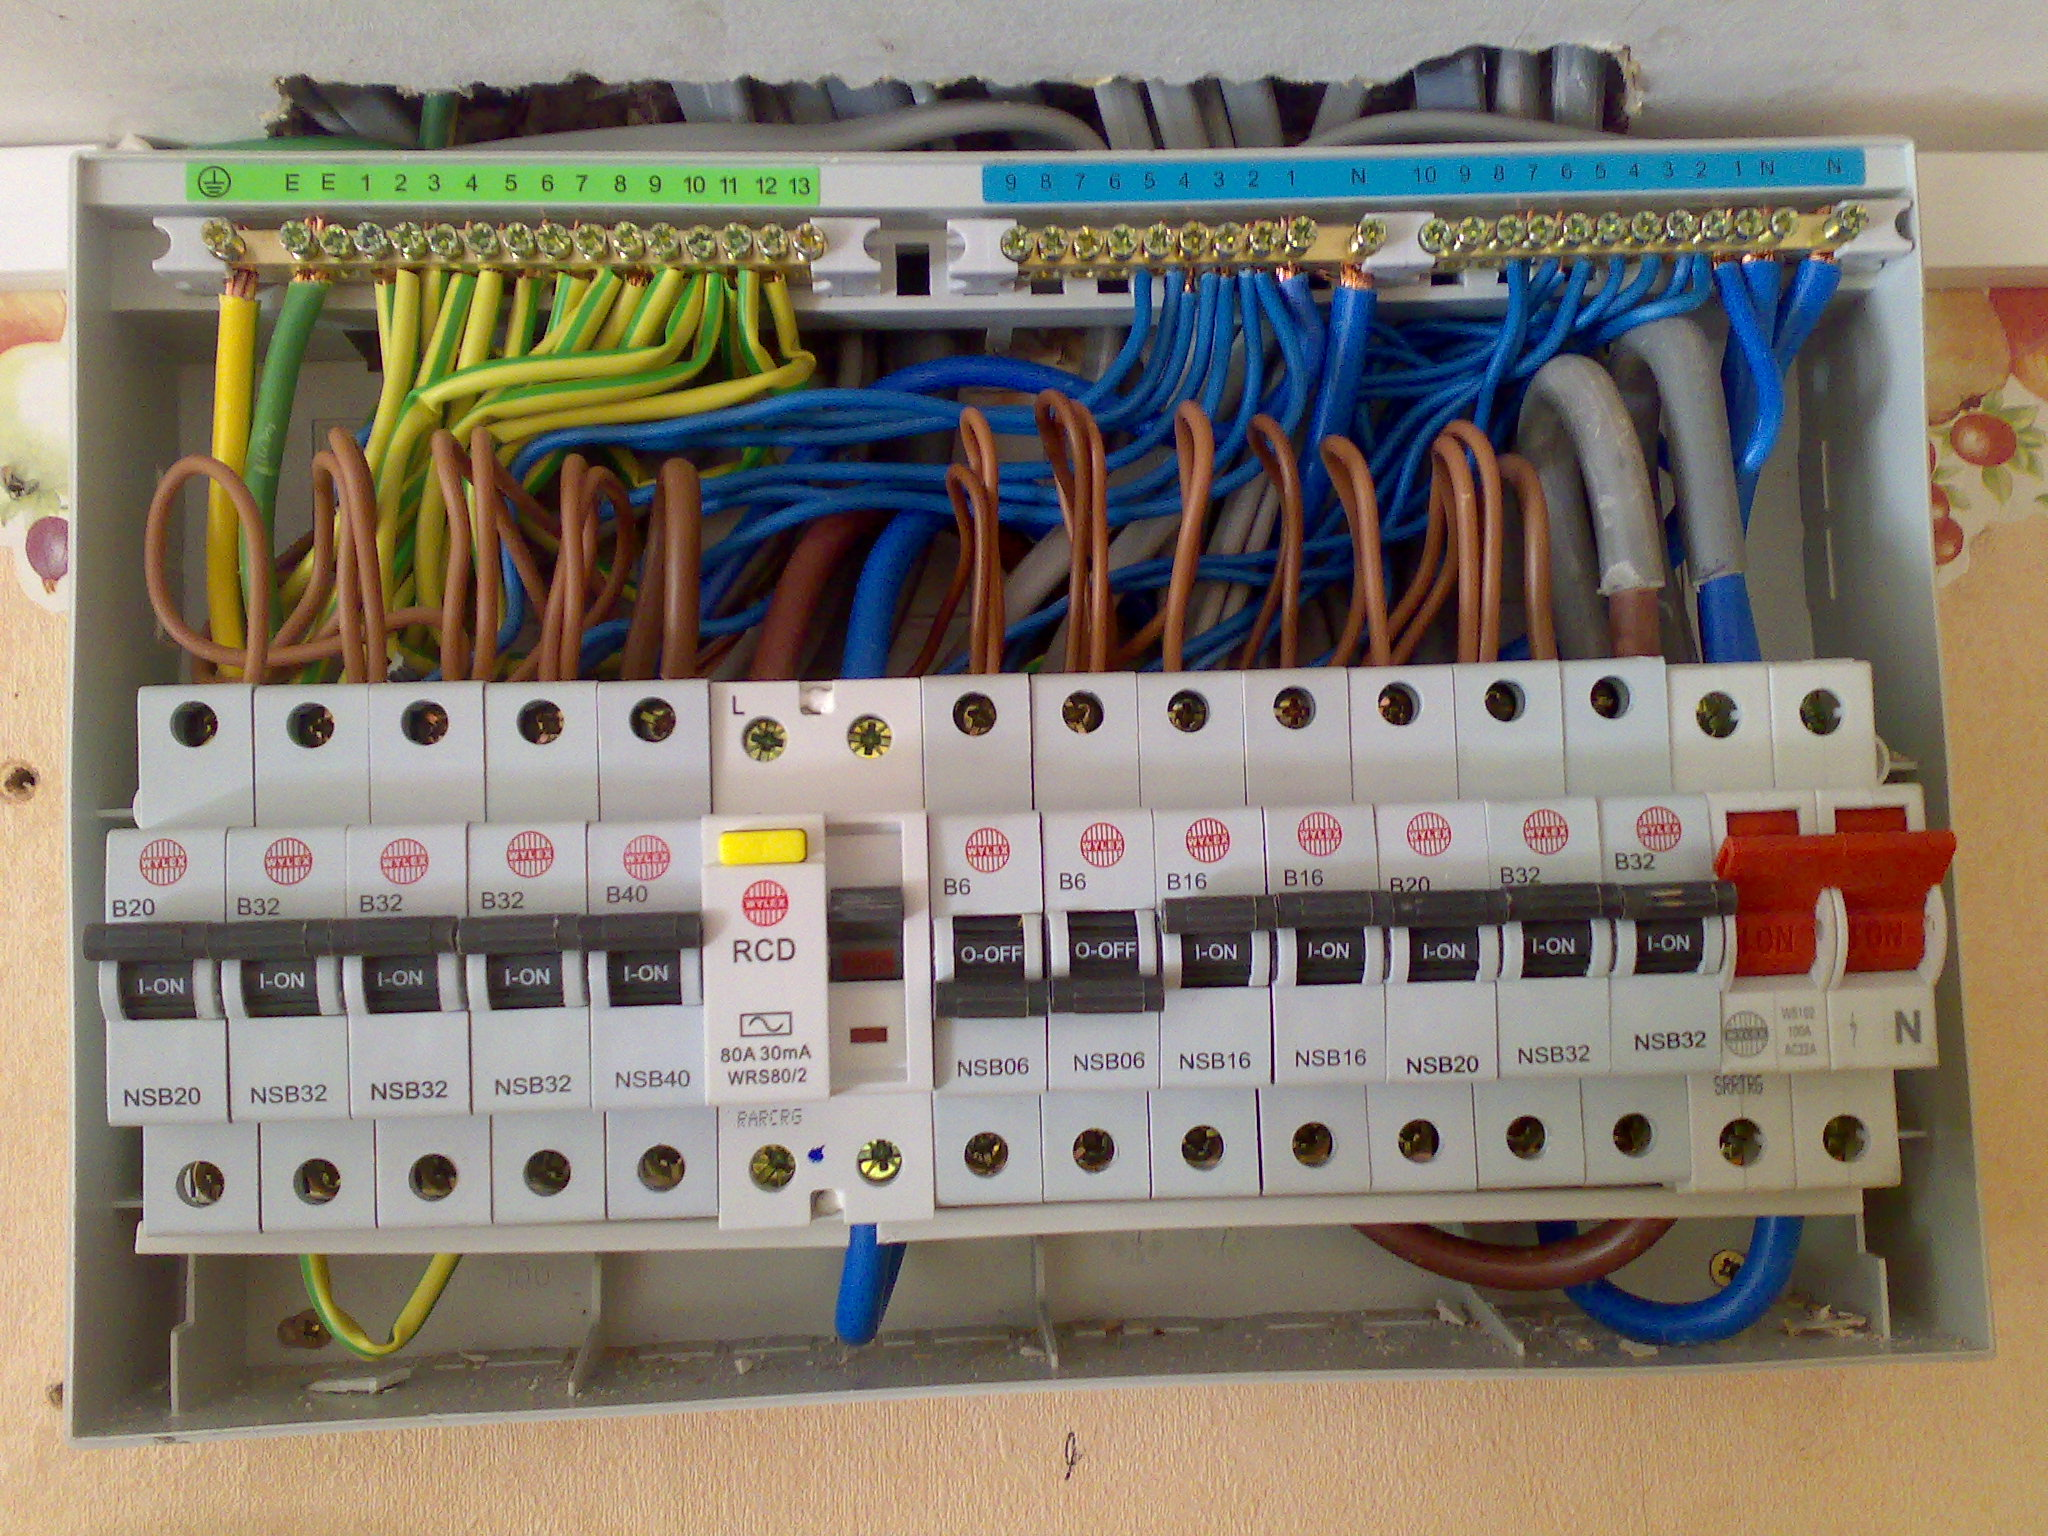 services available cable from meter to fuse box connect cable to fuse box